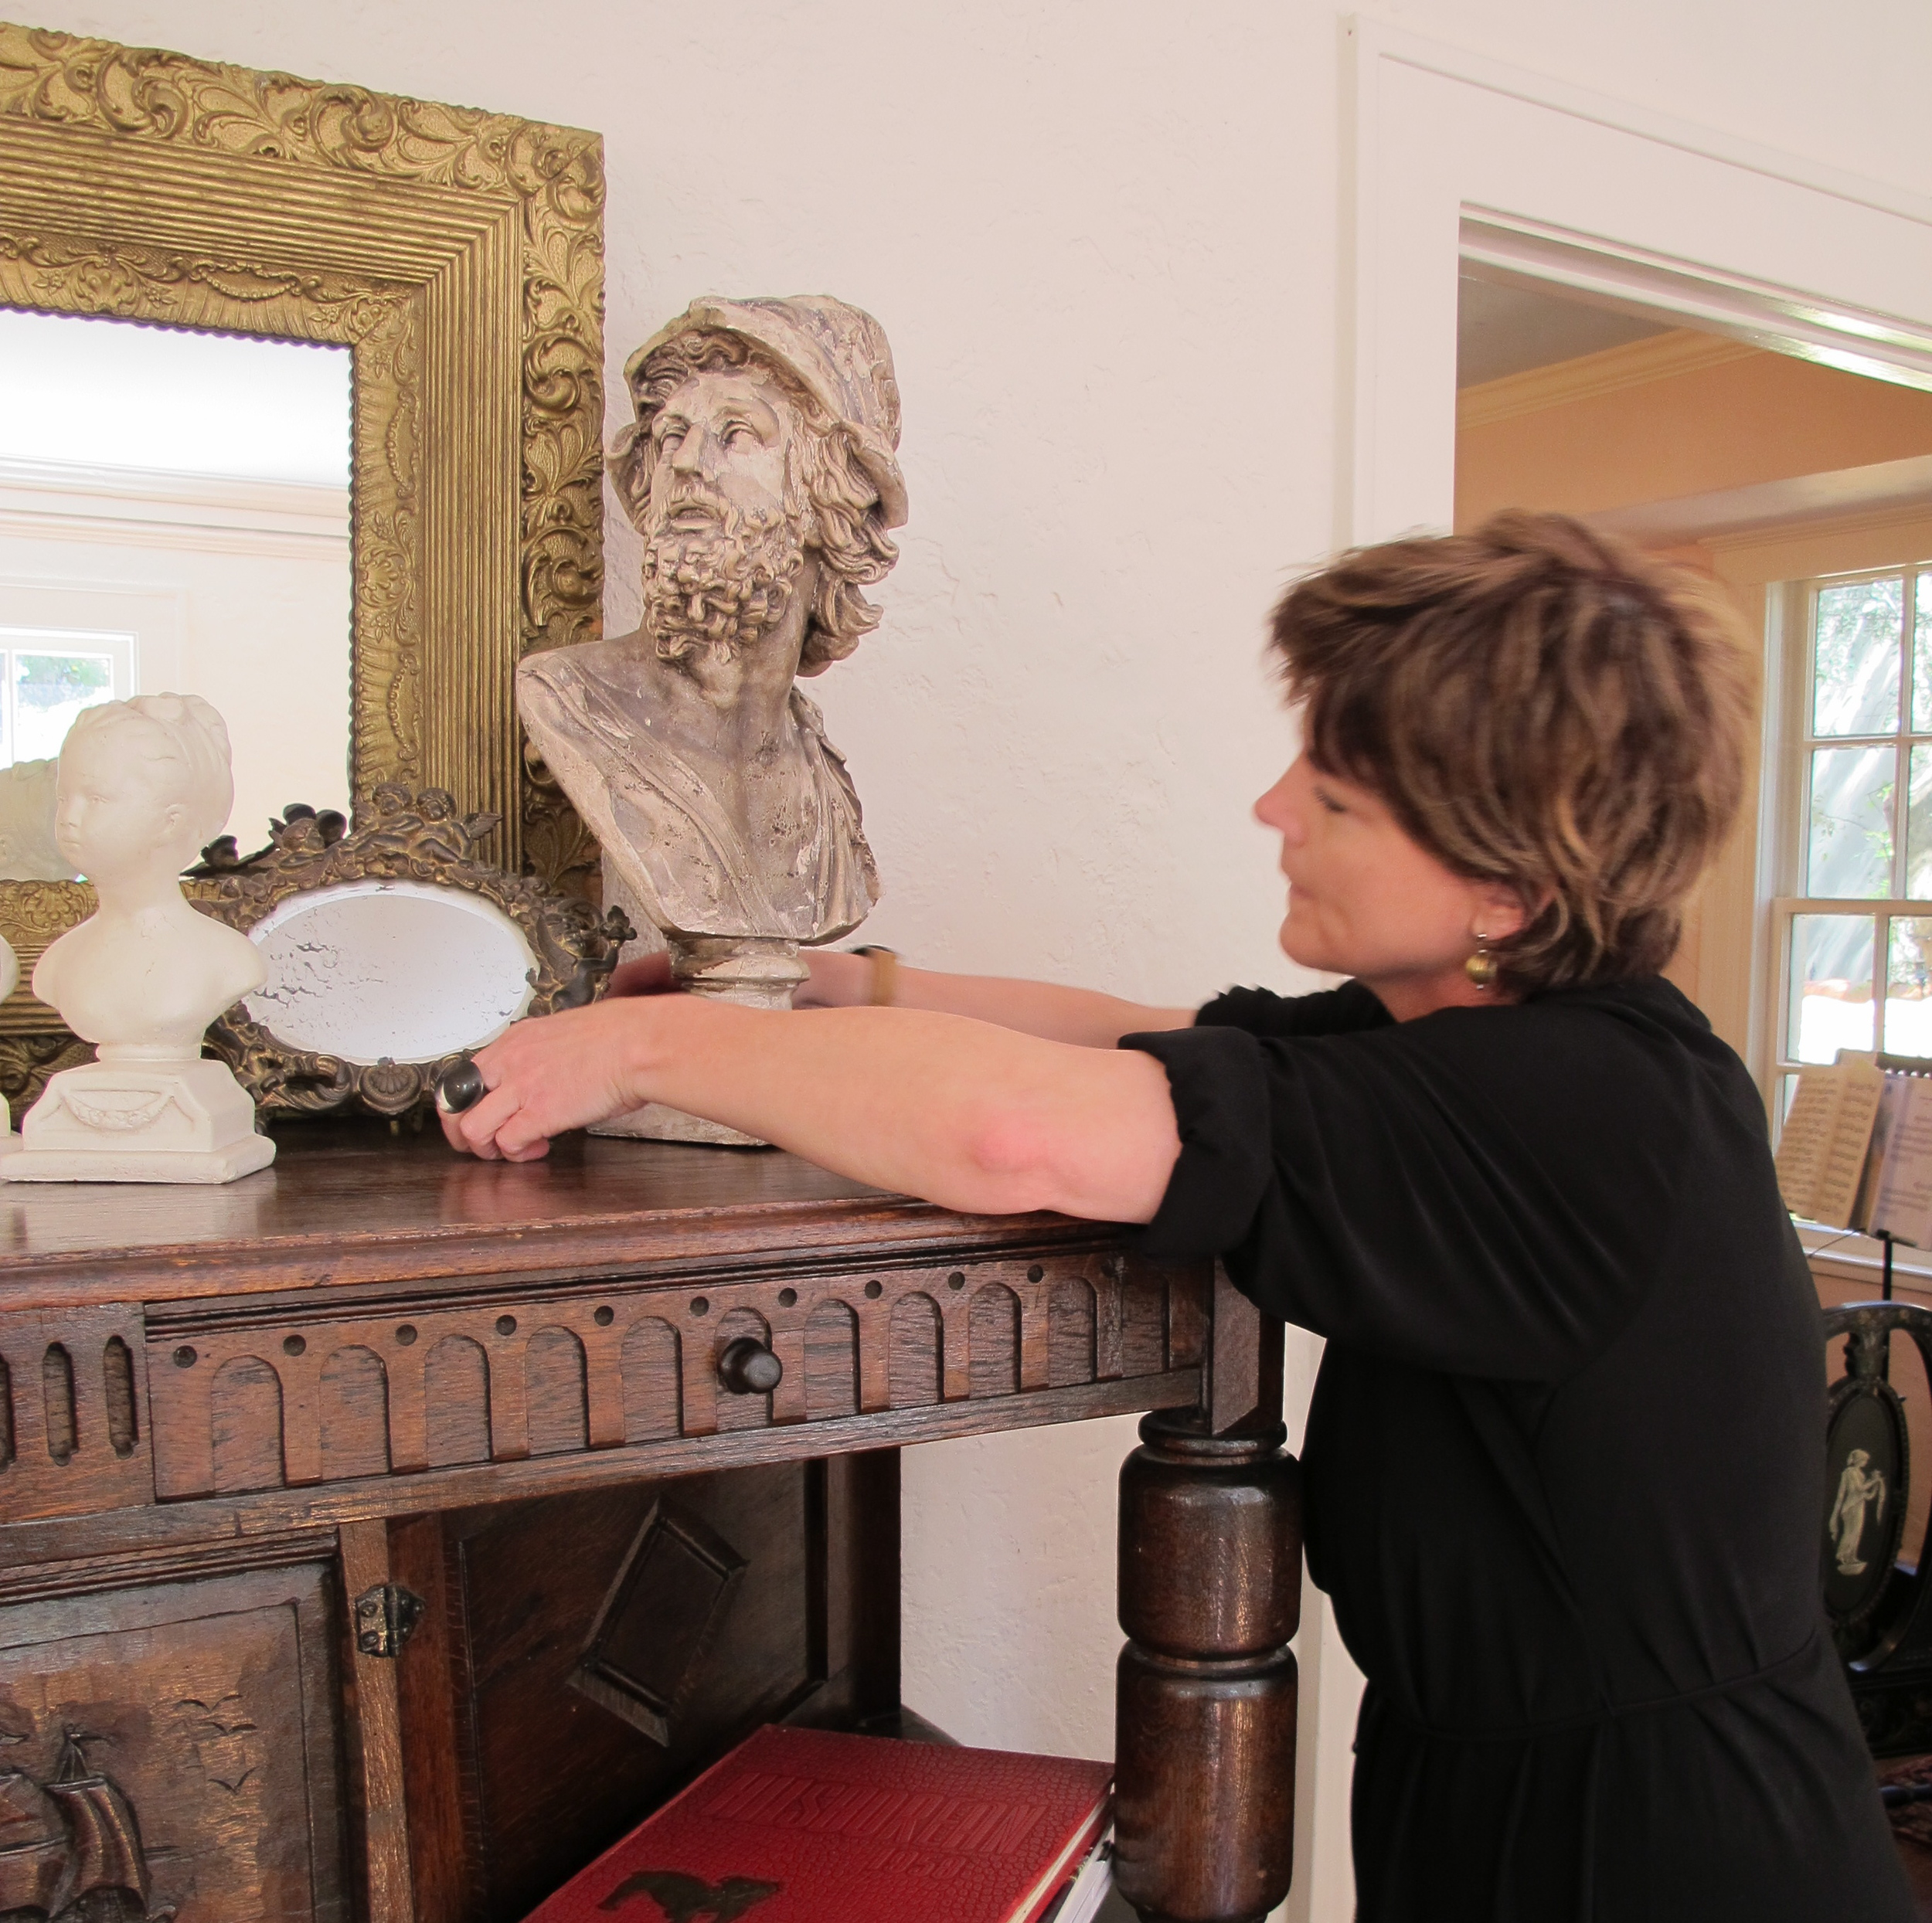 Working in client home arranging historical pieces in complimentary vignettes